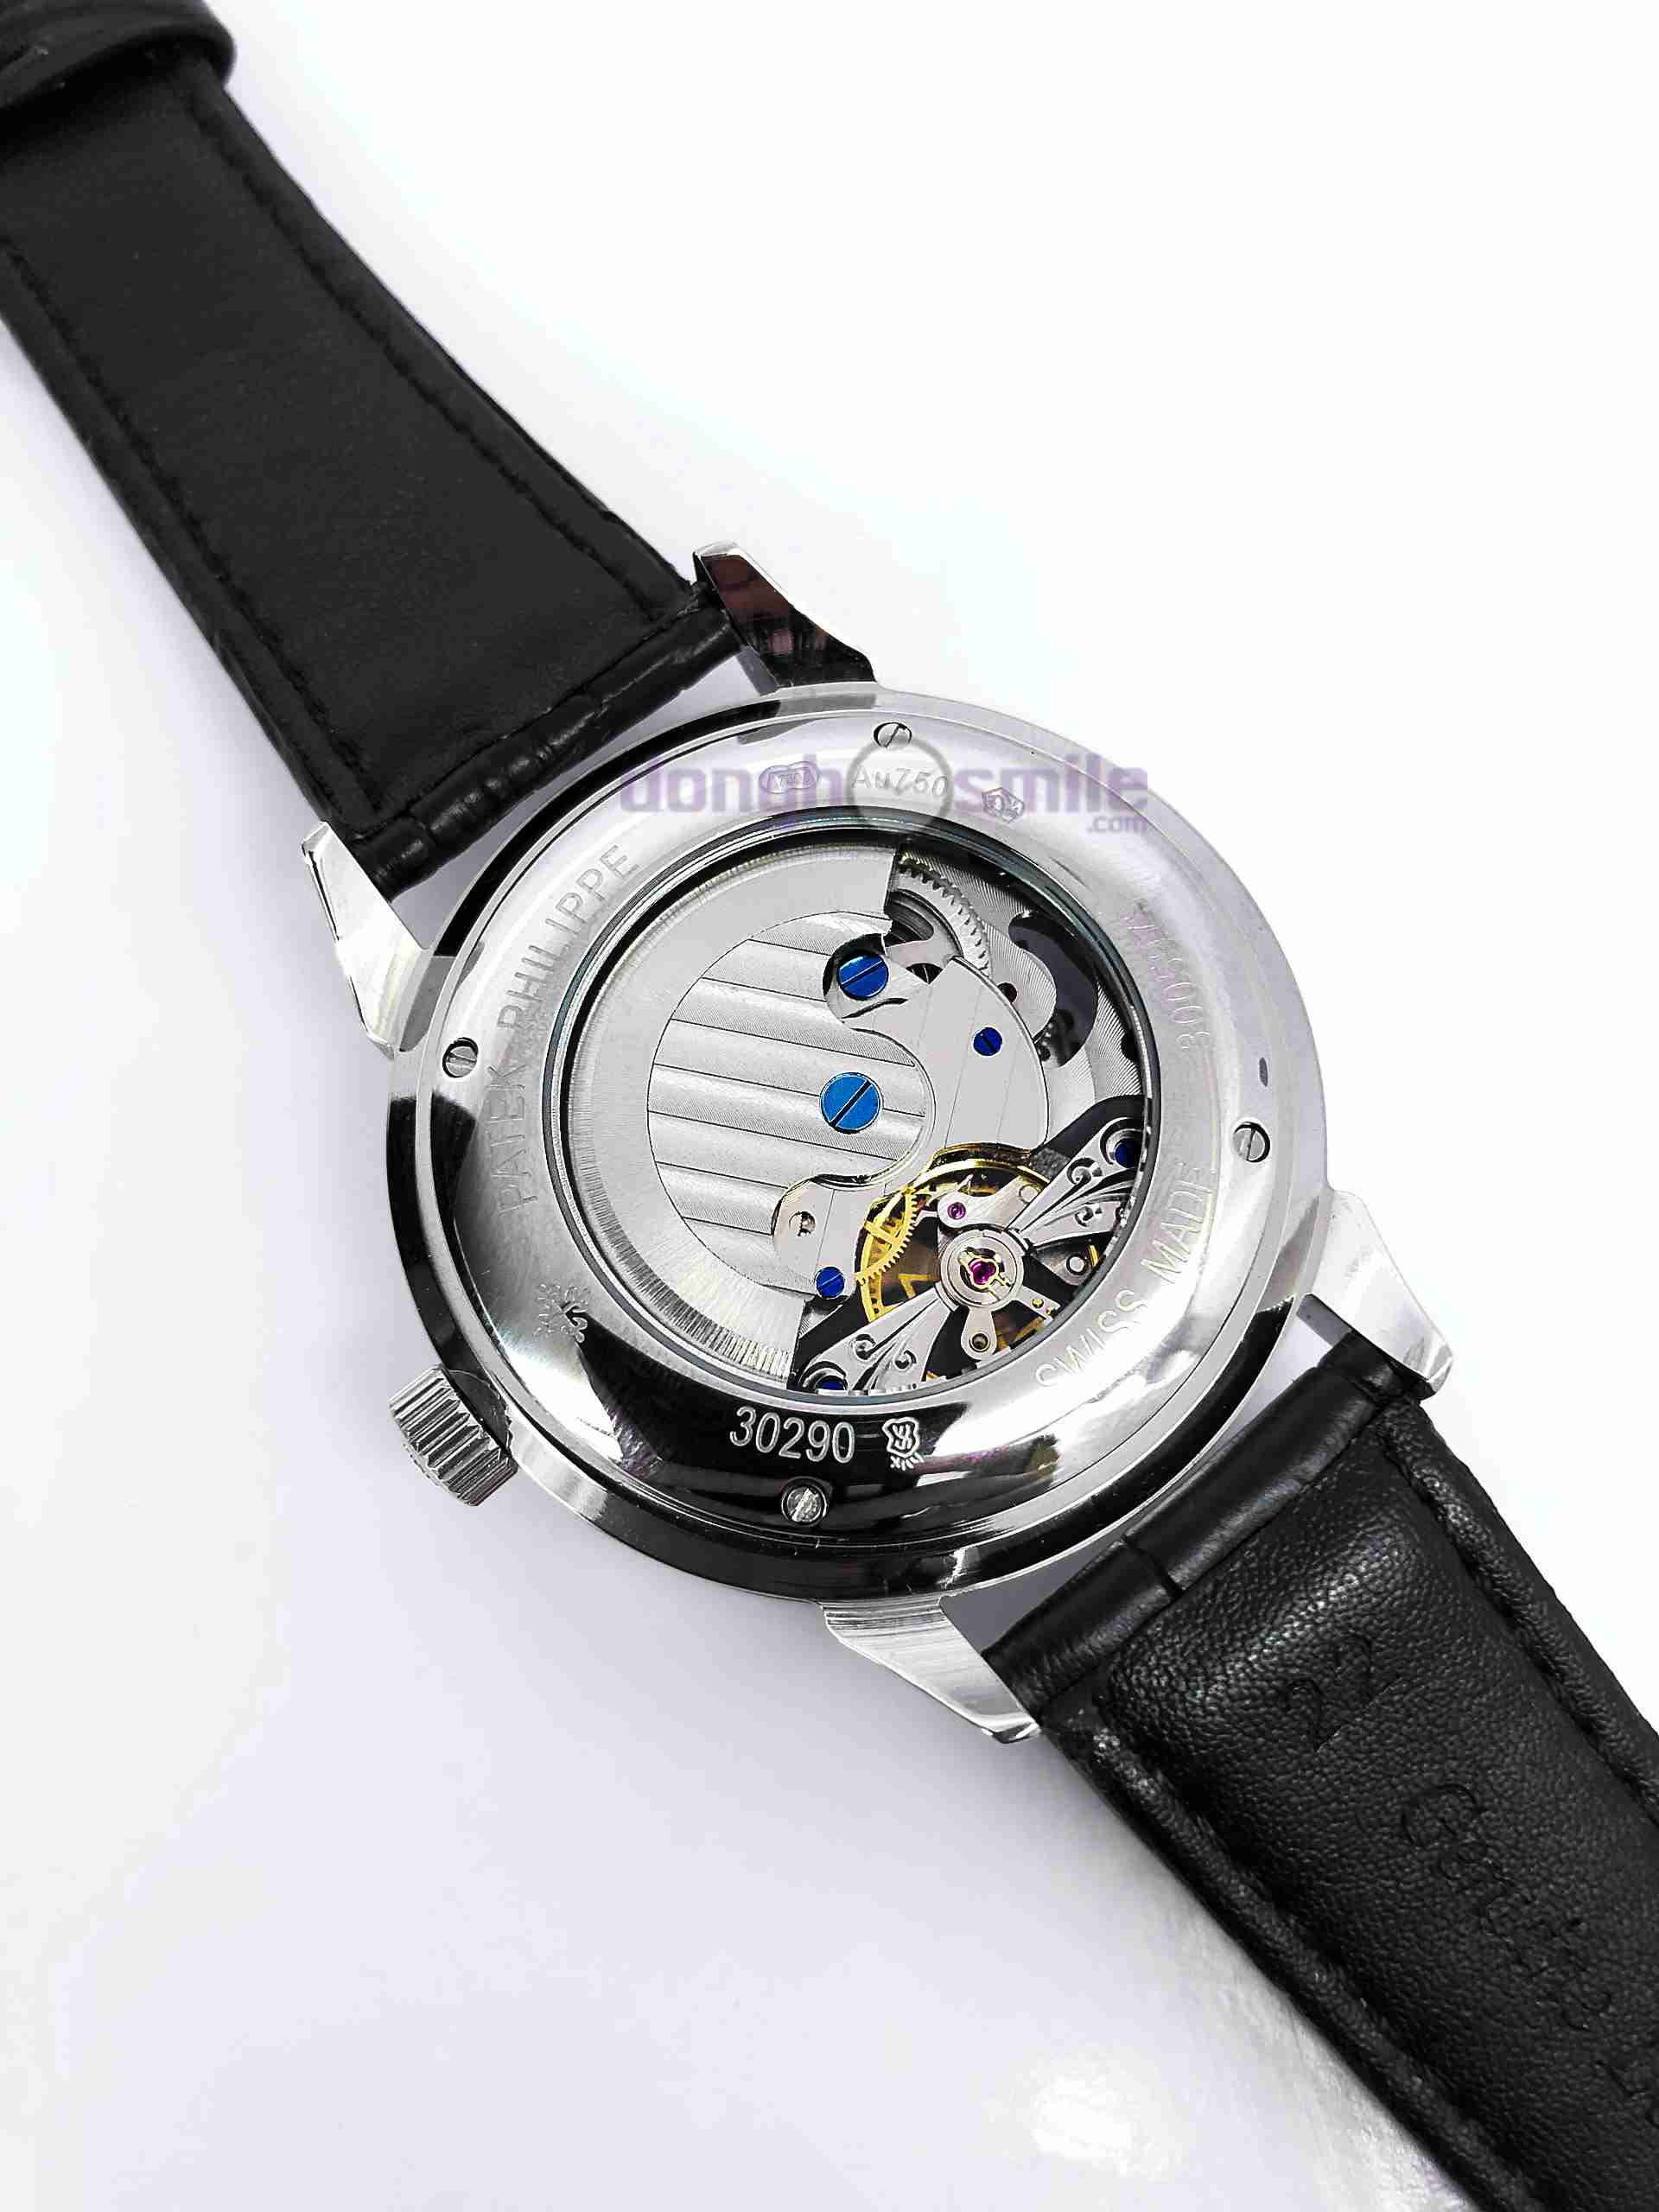 dong-ho-patek-philippe-geneve-gia-tot-a-pp114-9